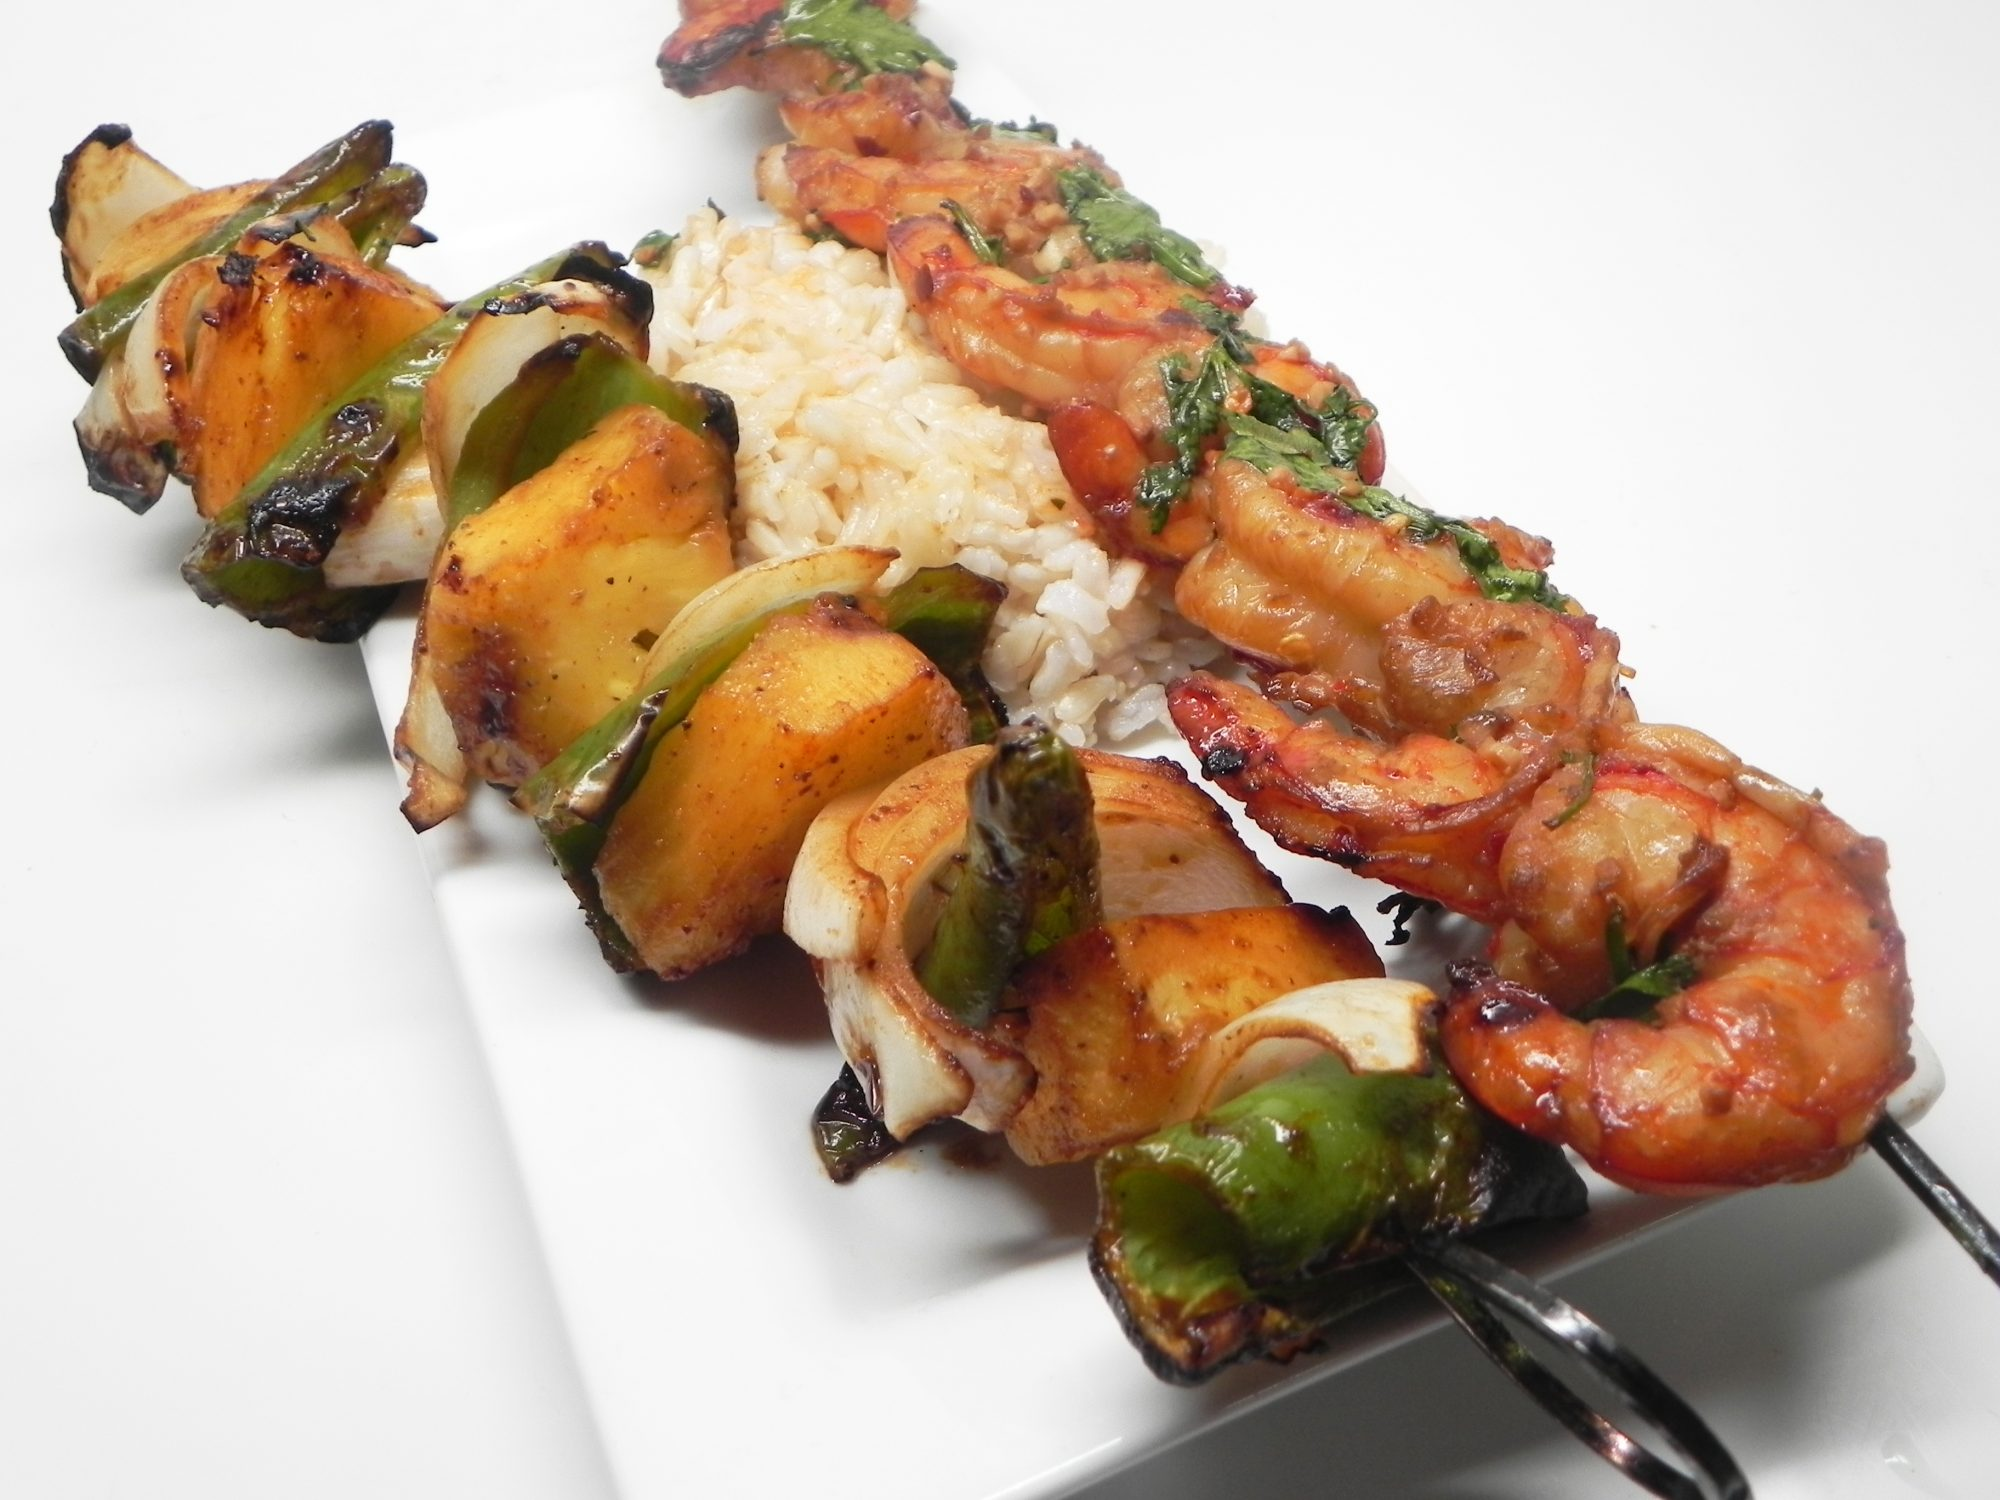 grilled shrimp, pineapple, onions, and peppers on skewers over rice